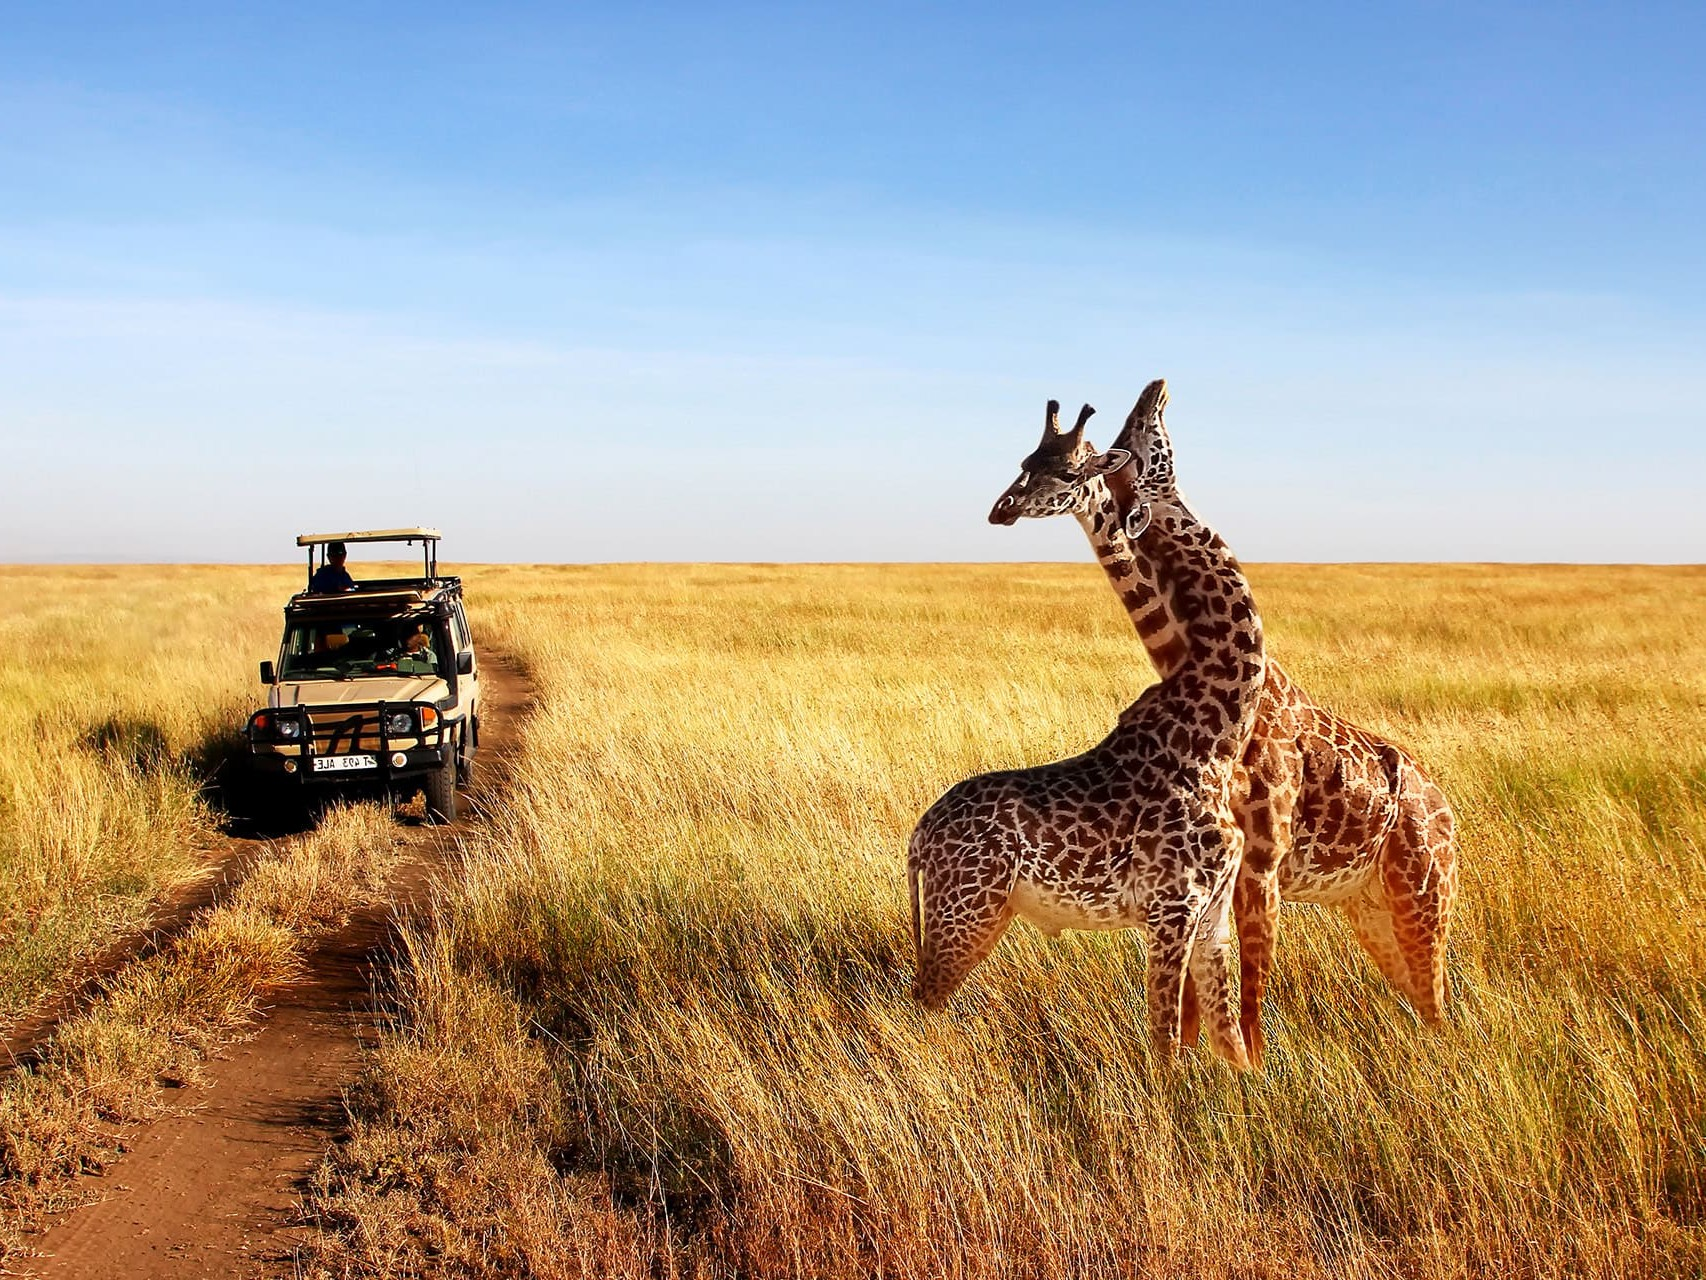 Adumu Safaris - Serengeti National Park